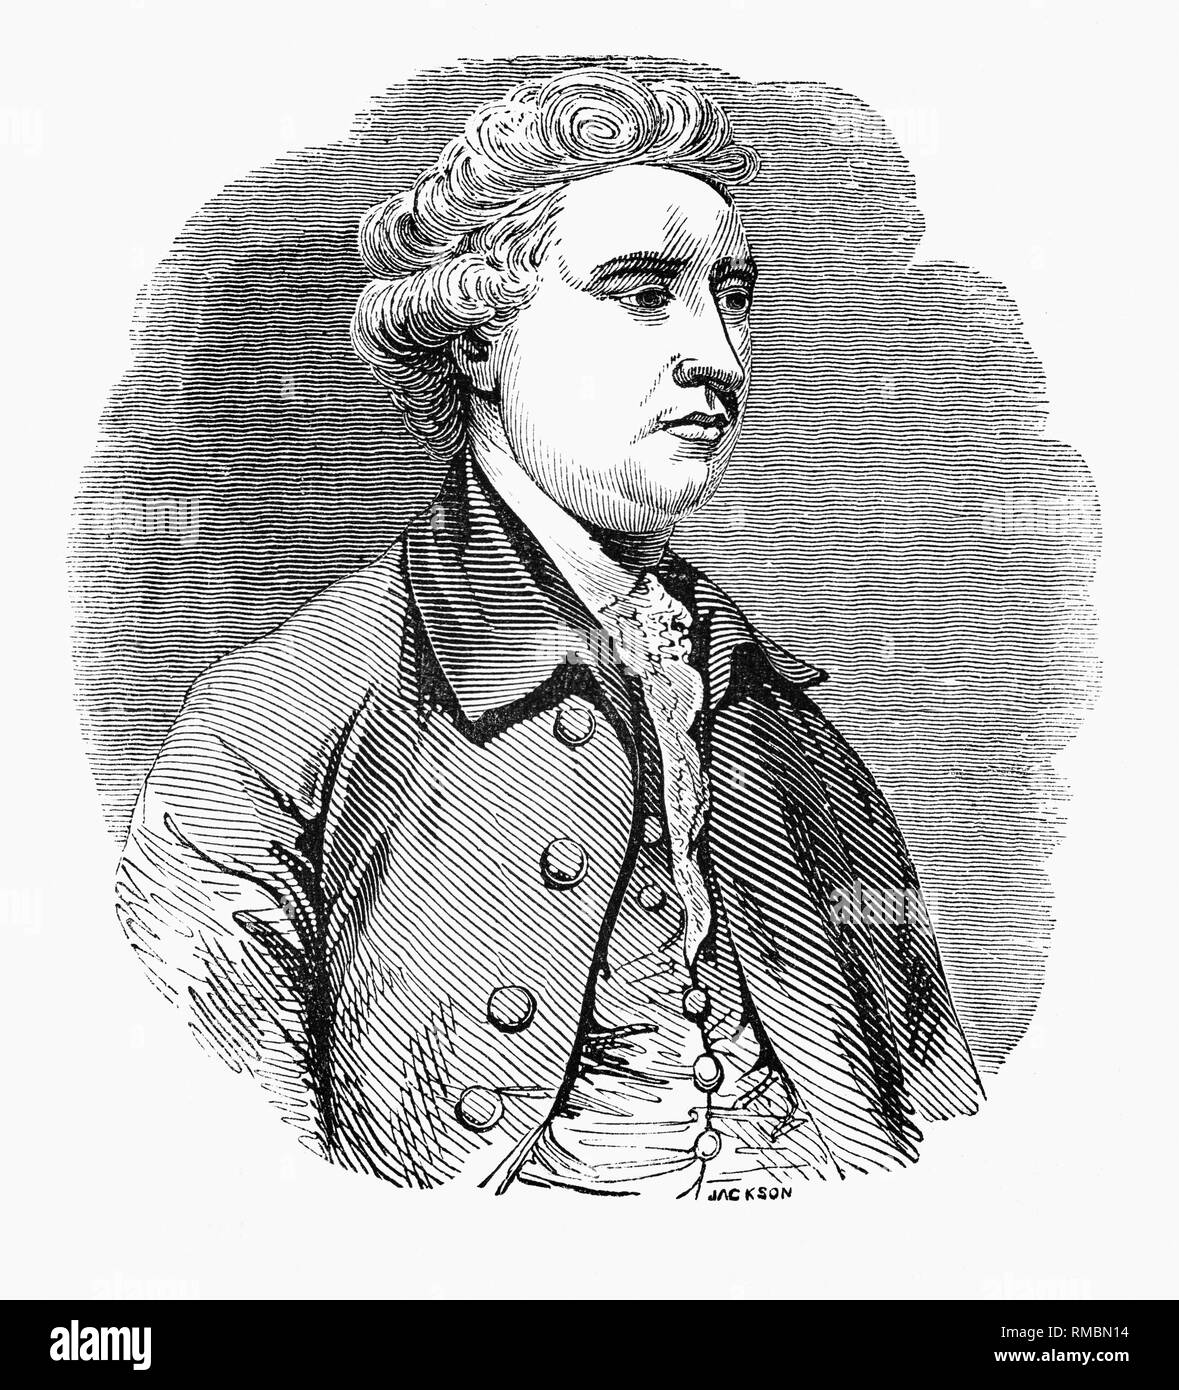 Edmund Burke (1729-1797) was an Irish statesman born in Dublin, as well as an author, orator, political theorist and philosopher, who after moving to London in 1750 served as a member of parliament (MP) between 1766 and 1794 in the House of Commons with the Whig Party. Burke is regarded by most political historians in the English-speaking world as the father of modern British conservatism. - Stock Image